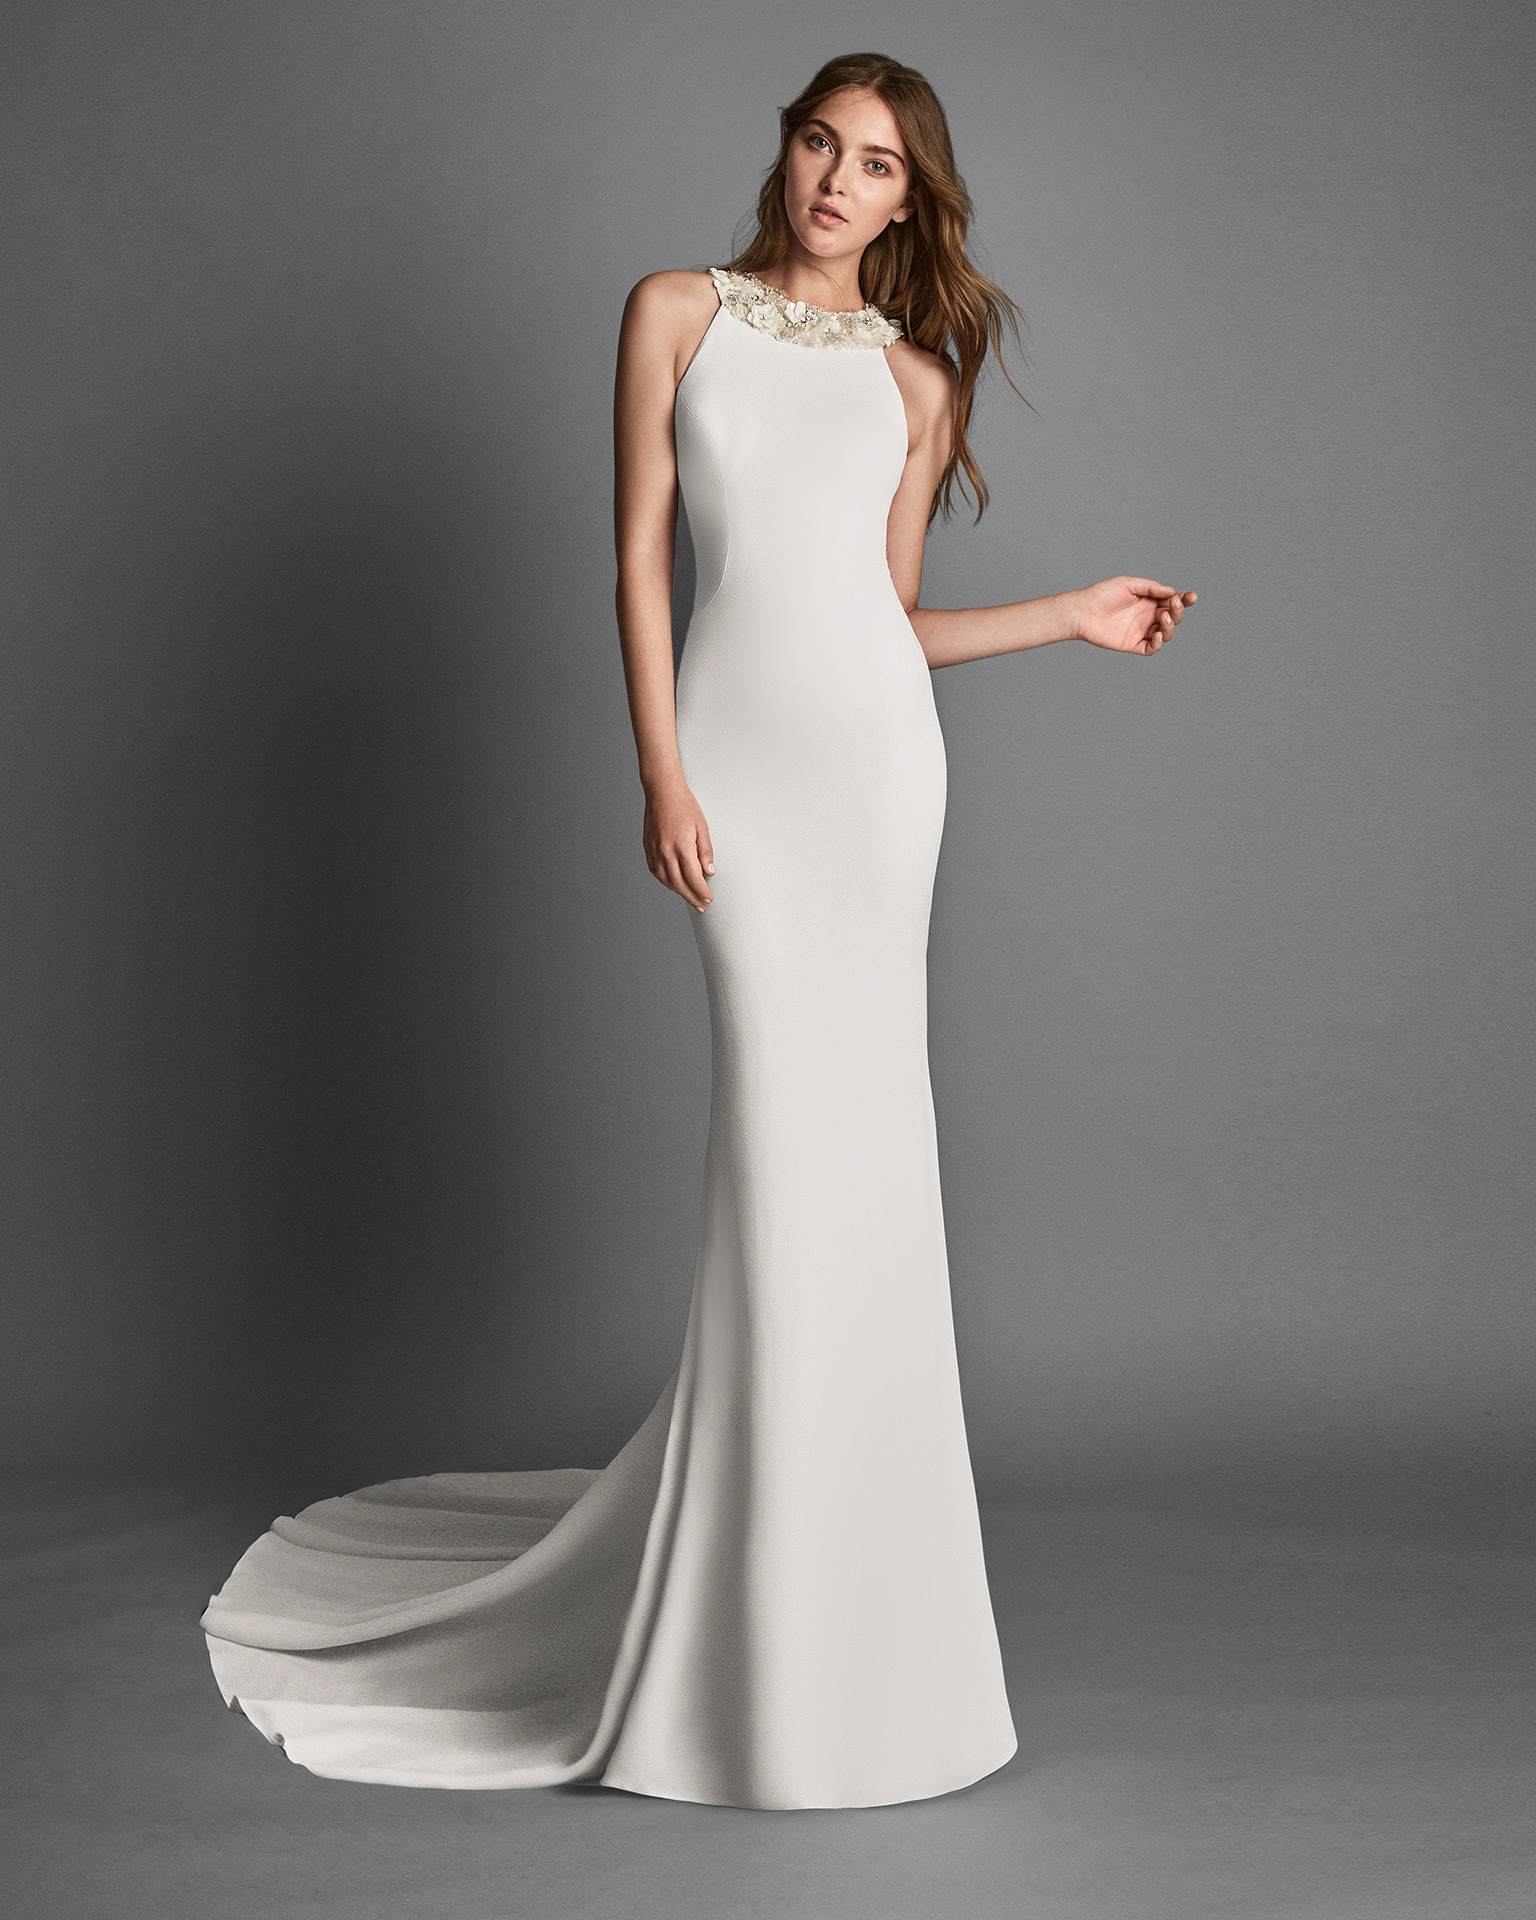 Mermaid-style crepe wedding dress with halter neckline, low back and crystal flower detail.